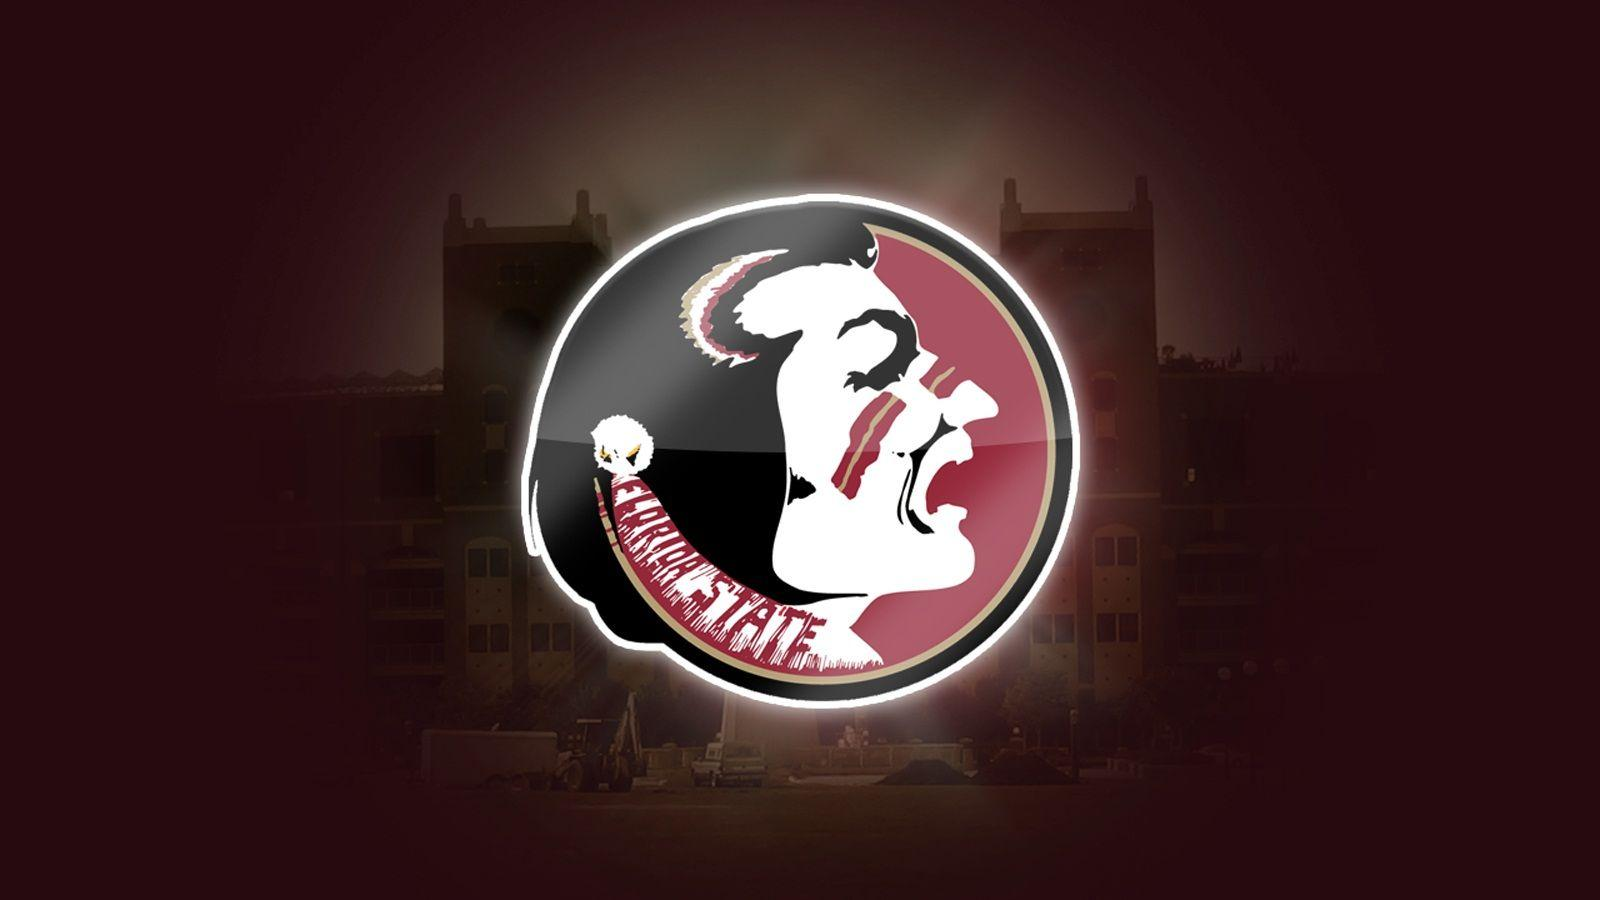 Fsu Wallpapers Top Free Fsu Backgrounds Wallpaperaccess